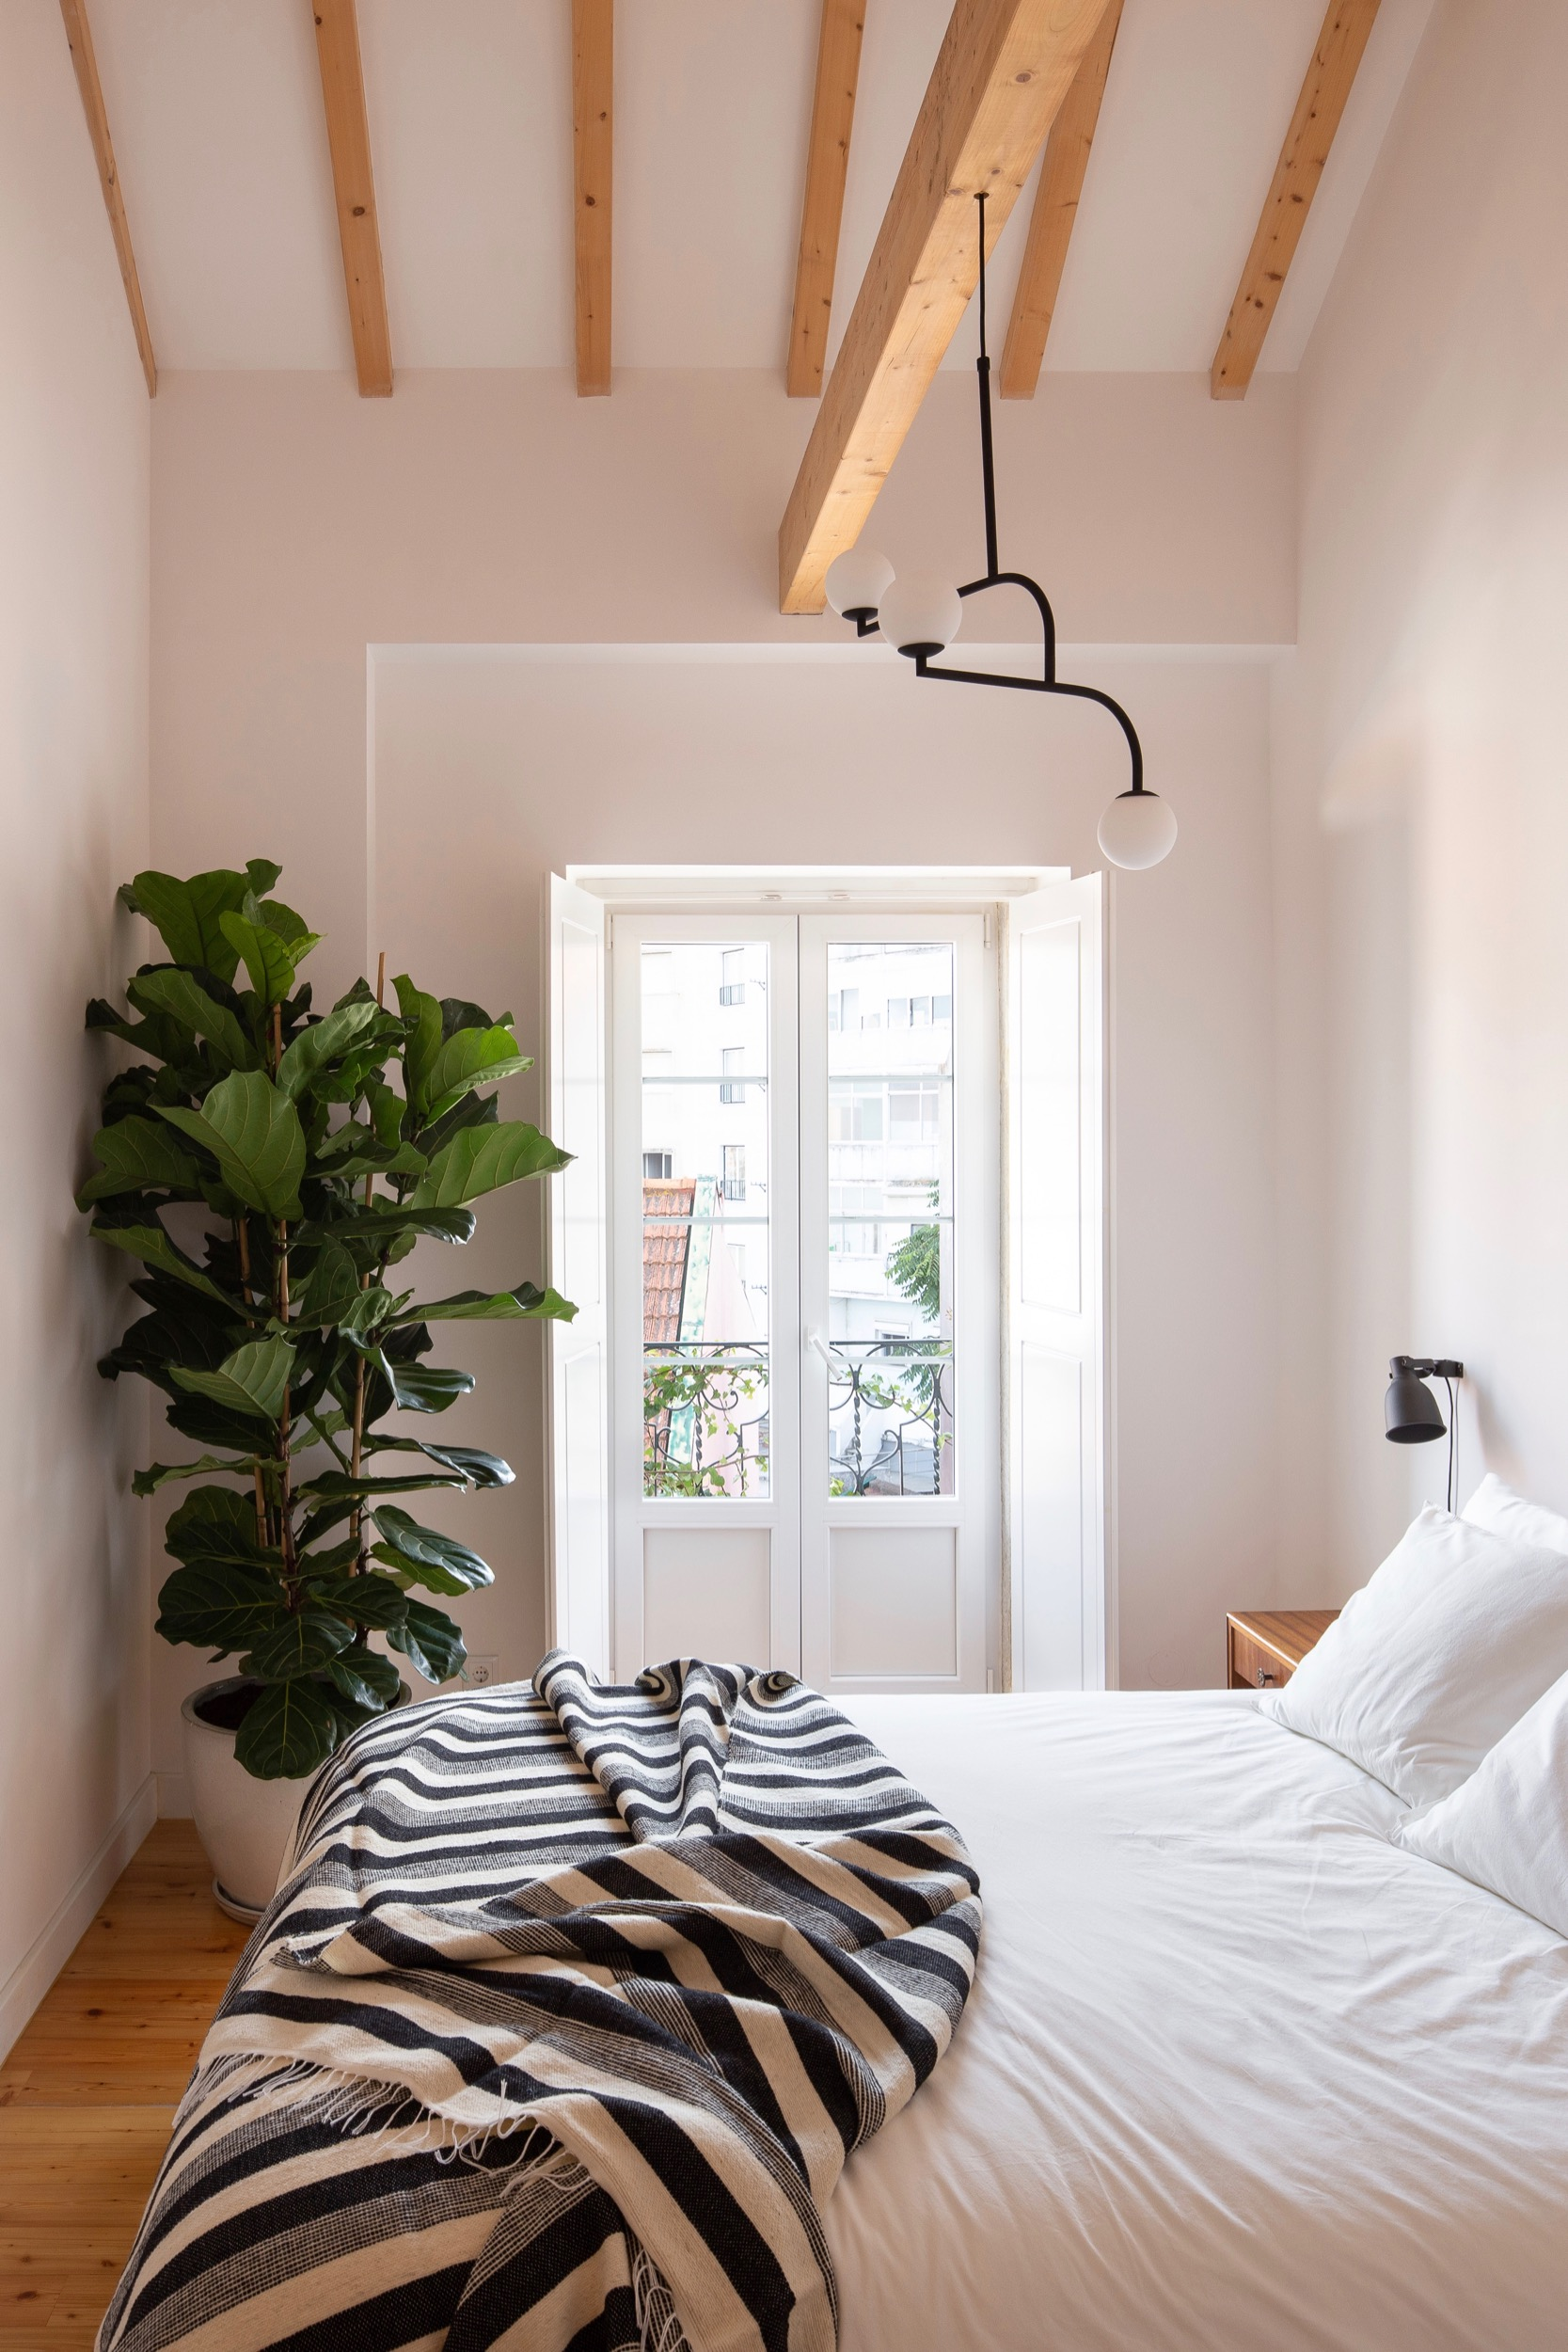 Photo of Lola Cwikowski Studio Travessa da Pereira Apartment residential project showing bedroom with Portuguese wool blanket, vintage nightstands, customized bed frame, and large ficus plant.